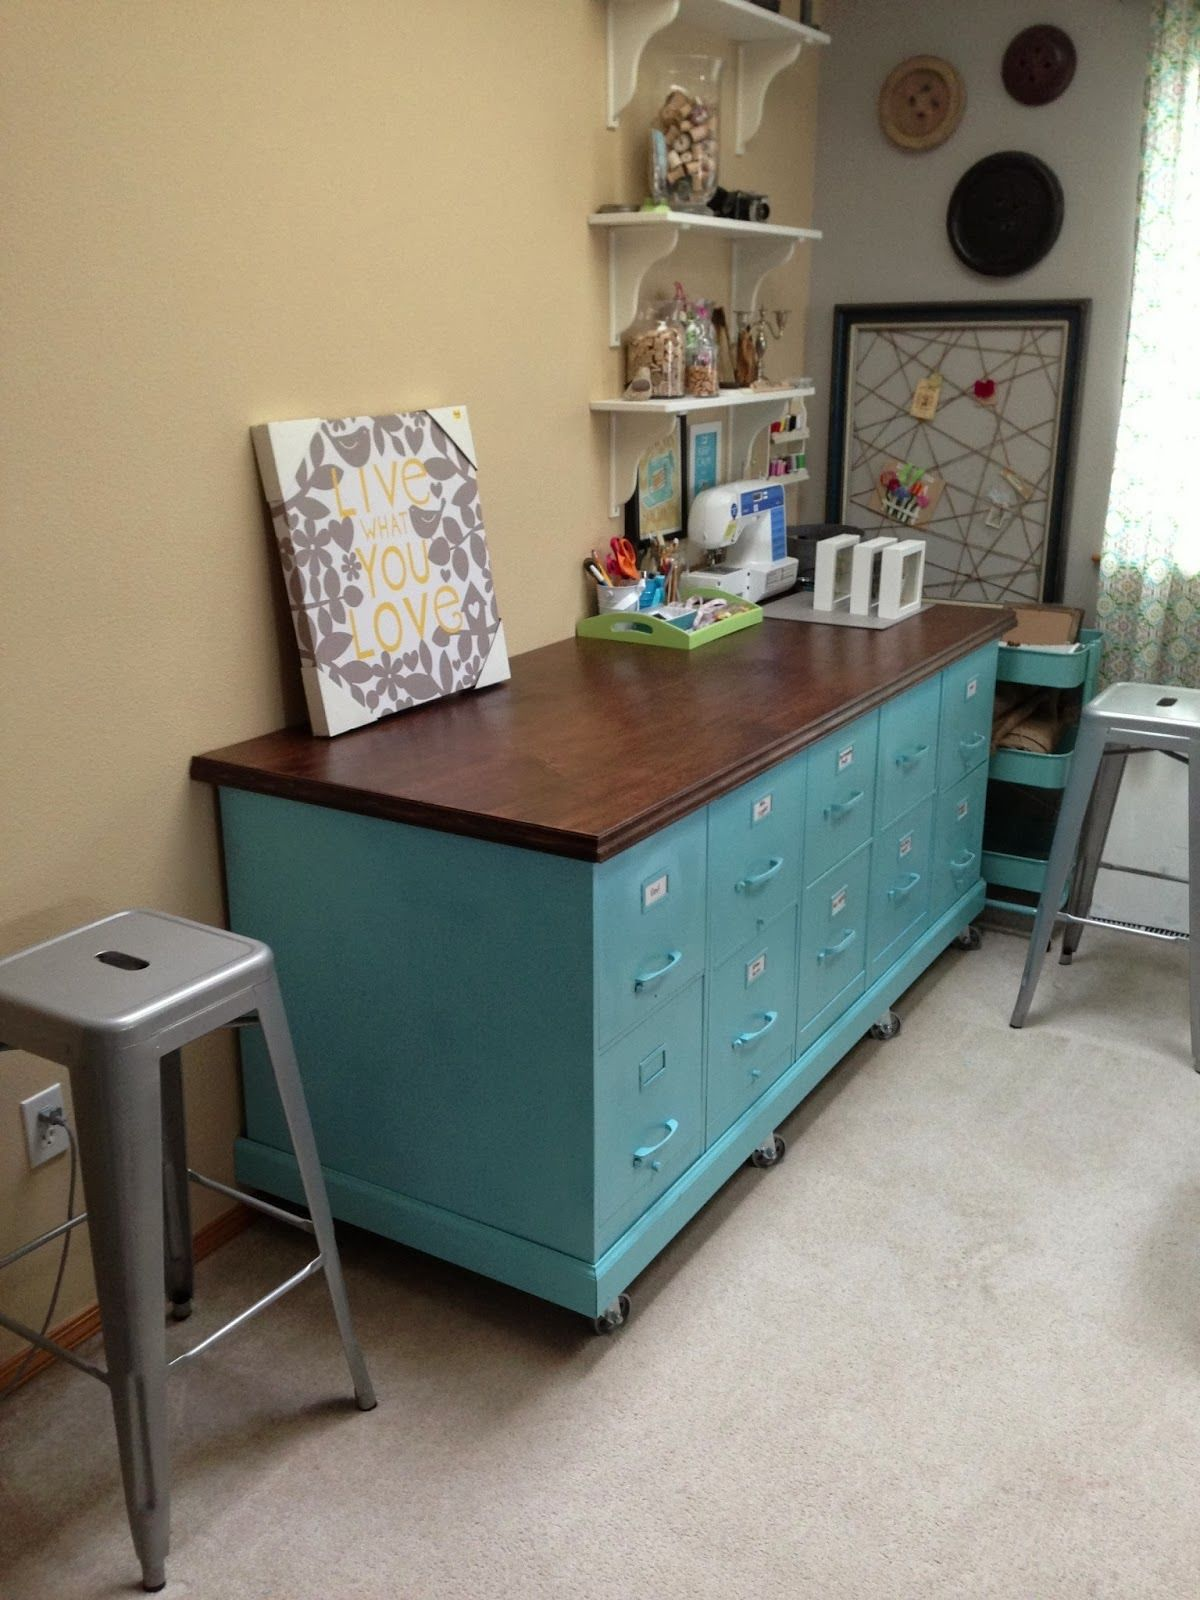 House Revivals Super Amazing Ways To Up Cycle Filing Cabinets Add A Sy Base With Casters And Pretty Work Surface Create Studio Storage